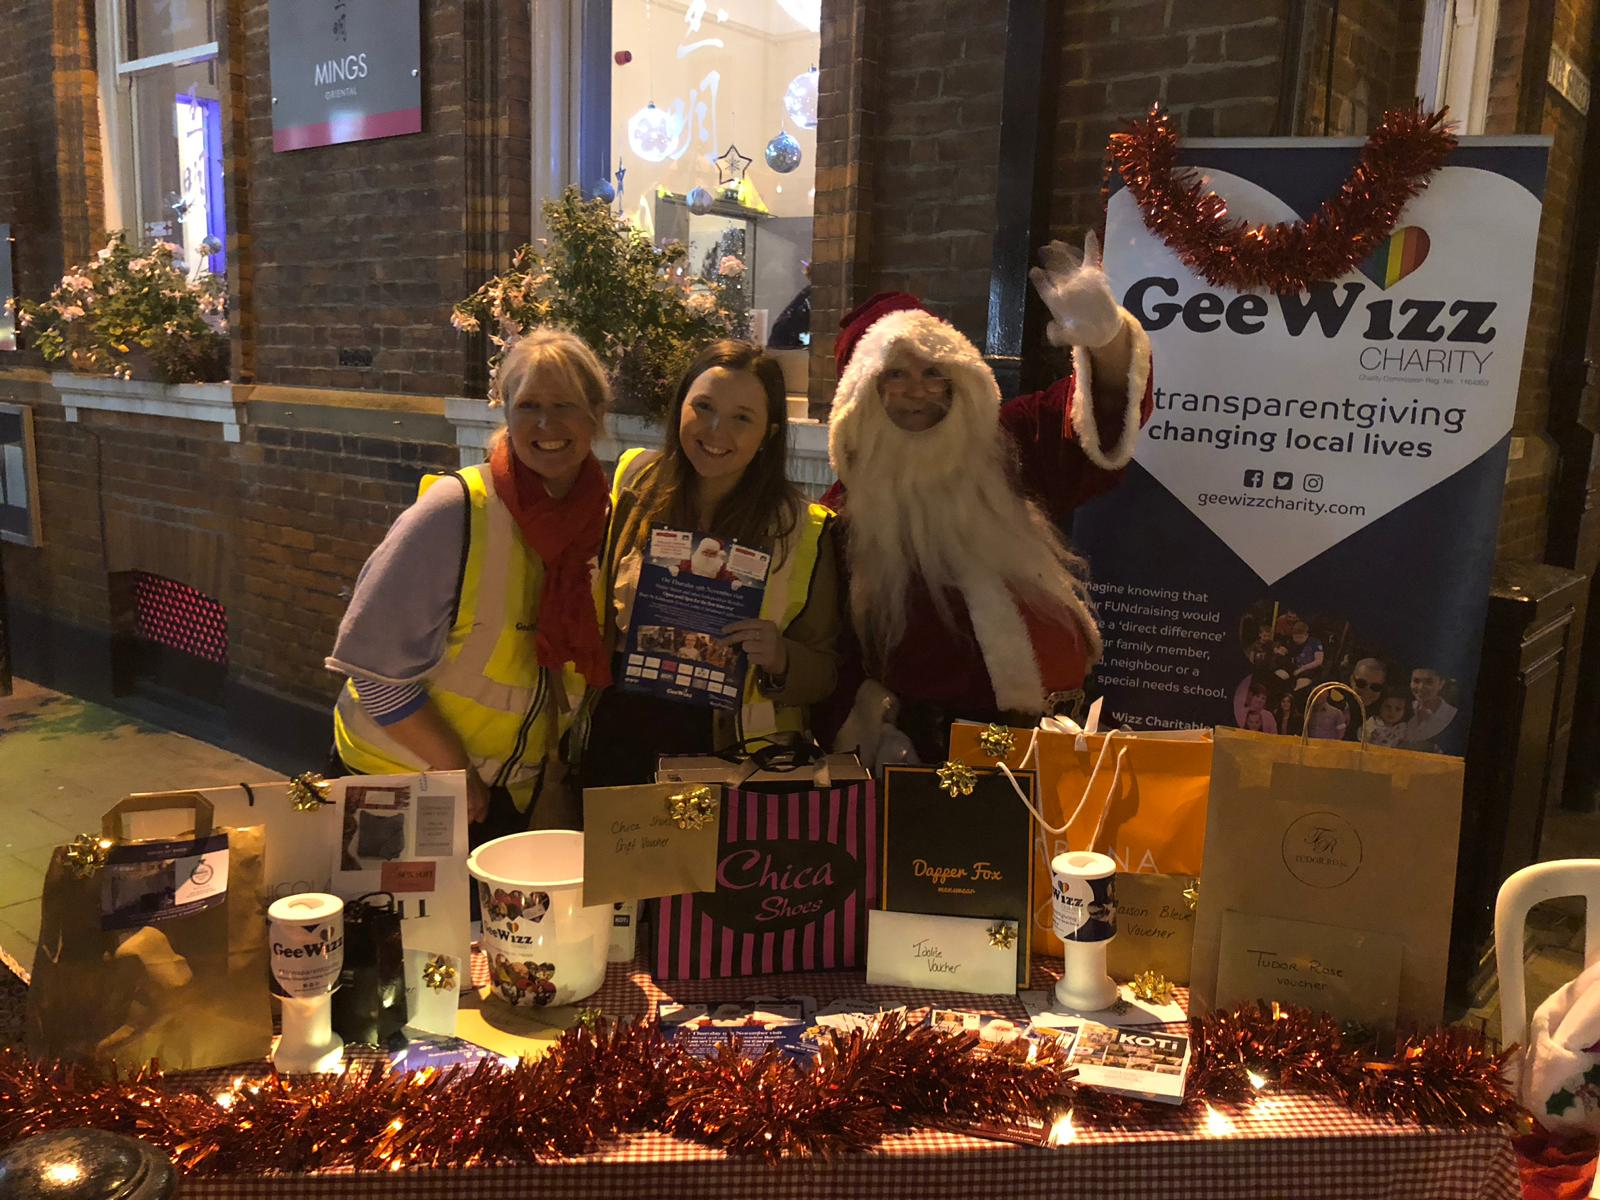 Festive goodwill to GeeWizz has sparkled at Christmas